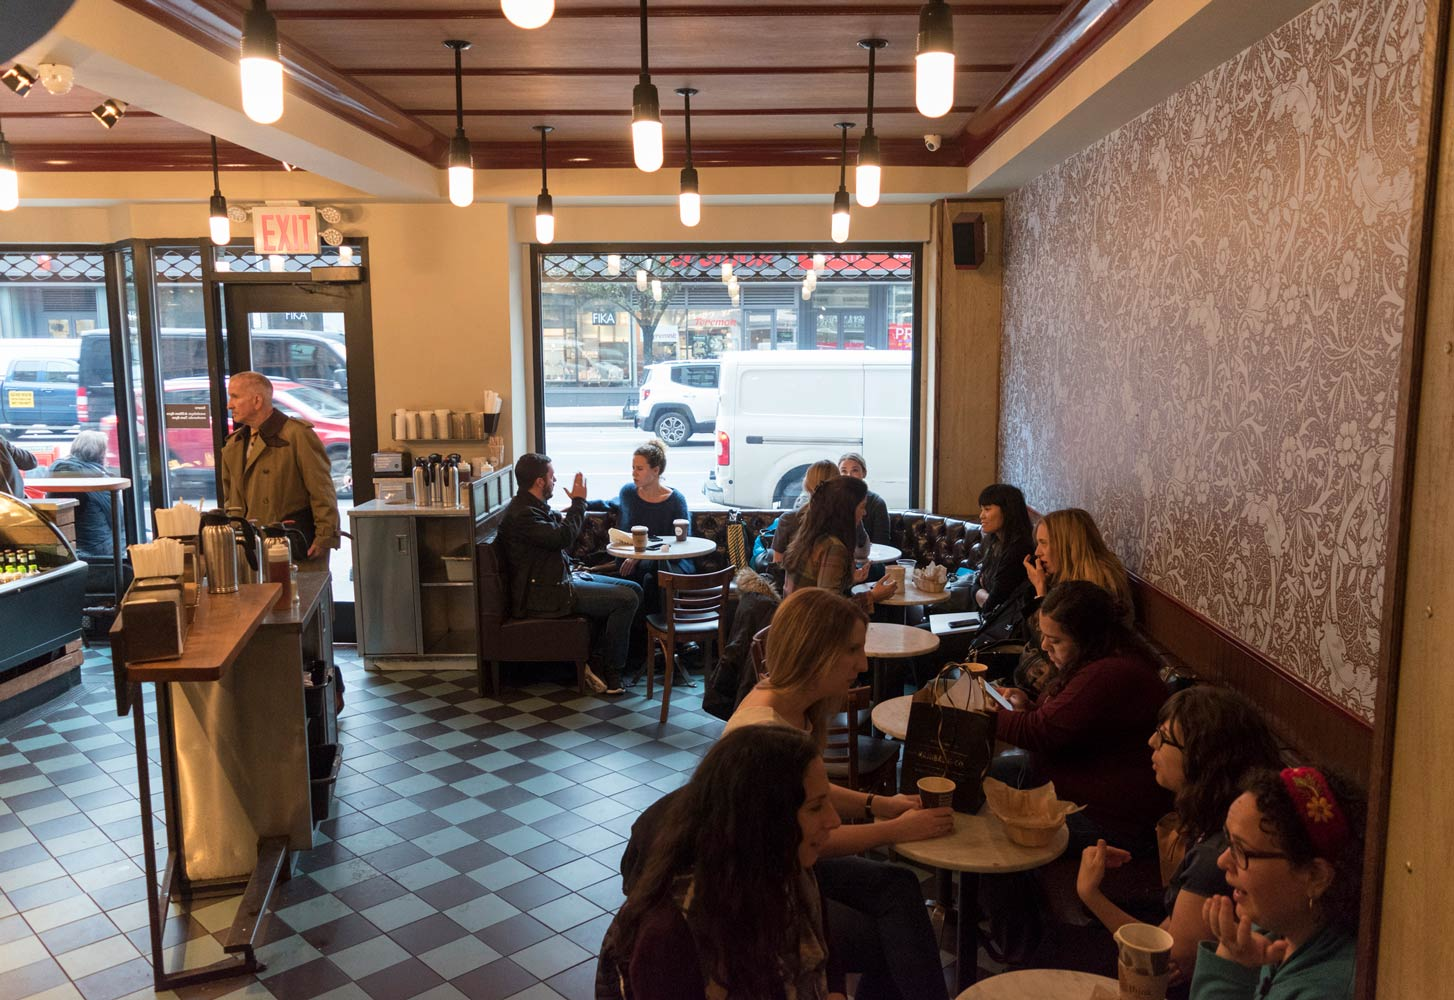 20171109_thinkcoffee_6thave_23.jpg